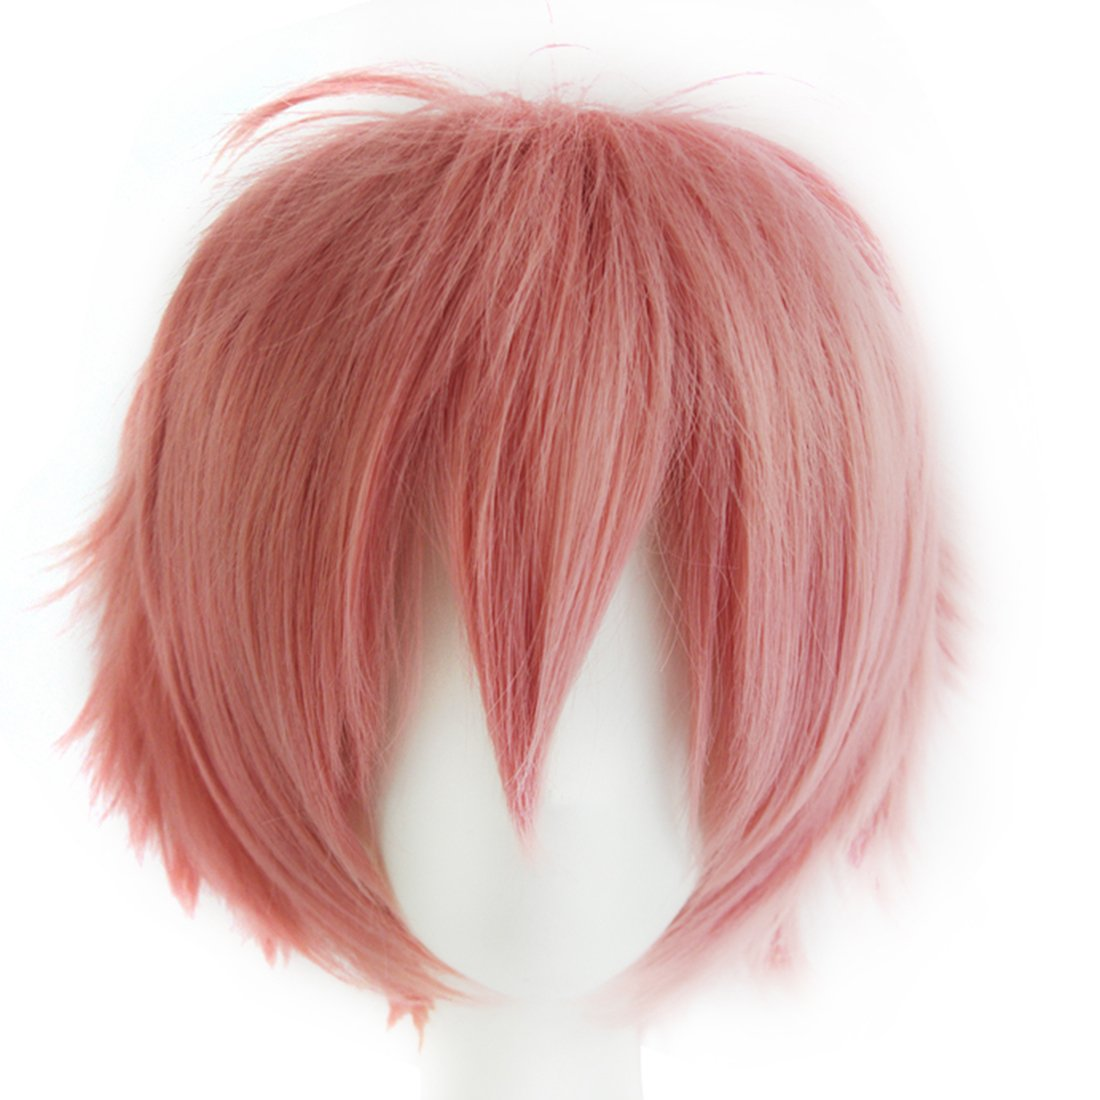 Alacos Short Pink Spiky Layered Anime Cosplay Costumes Wig for Sayori+Cap